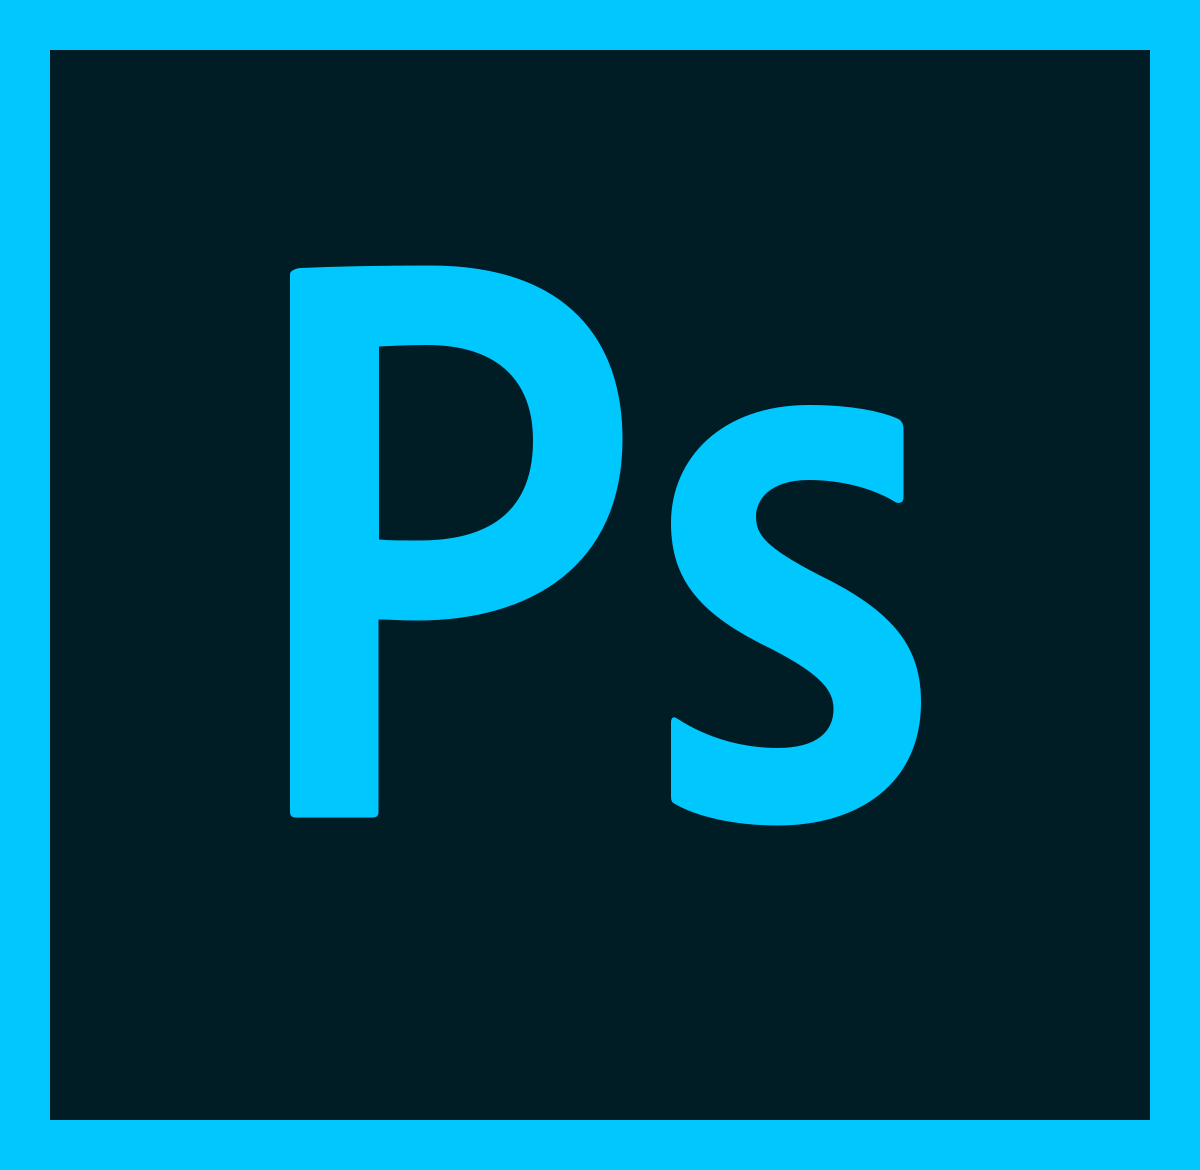 photoshop cs5 portable download